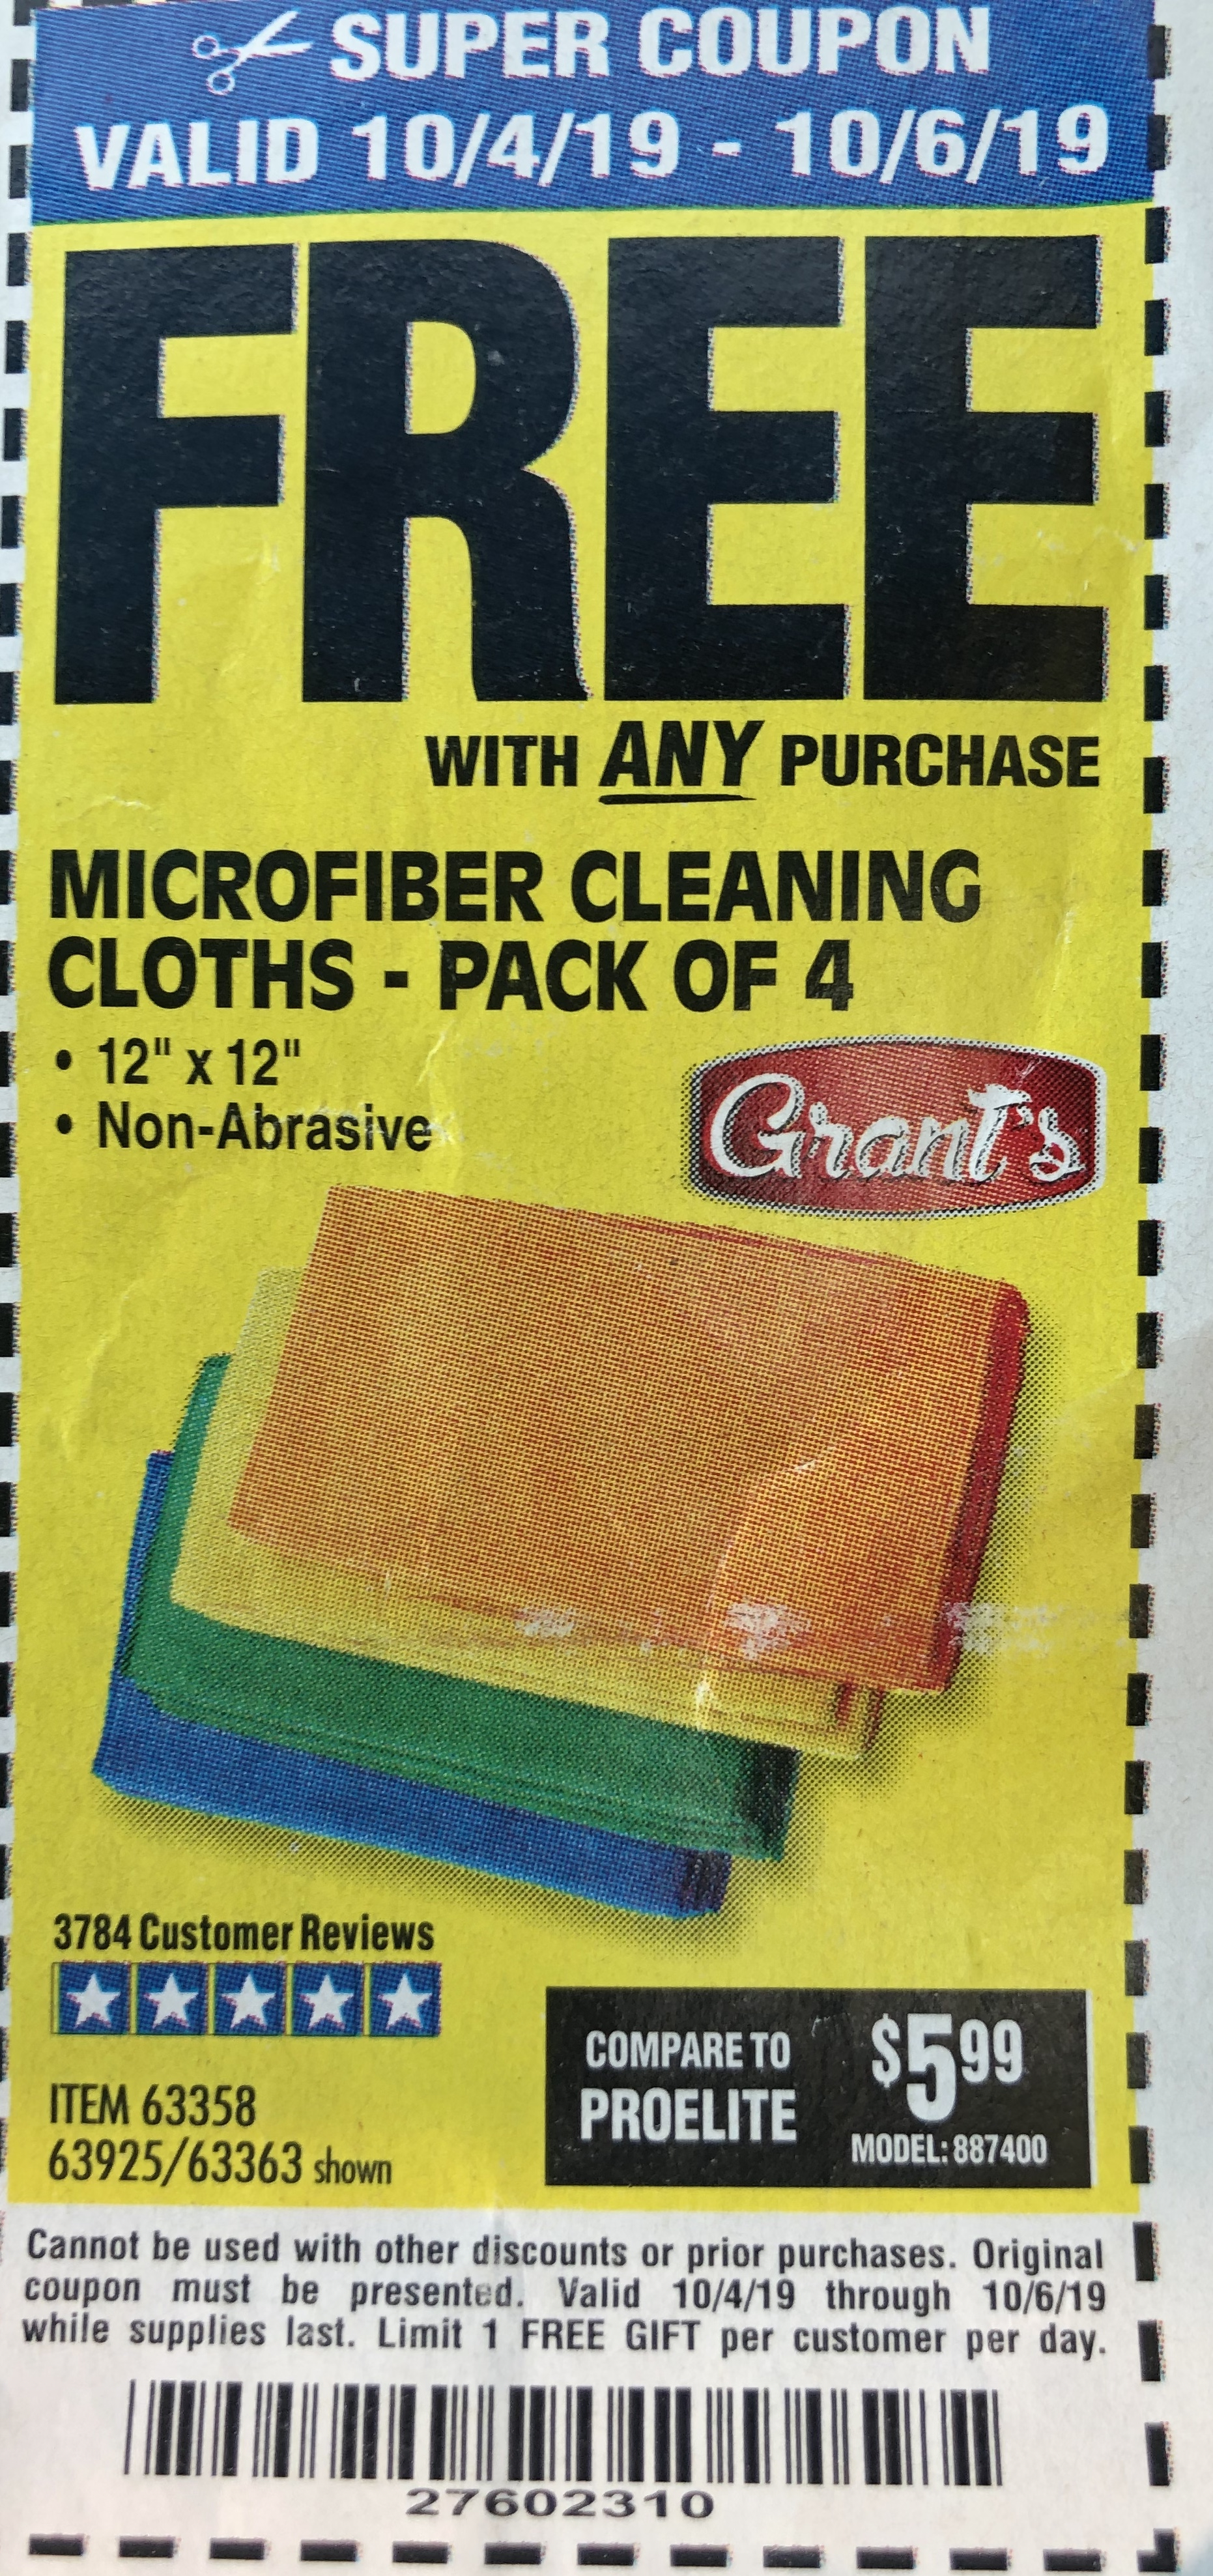 www.hfqpdb.com - MICROFIBER CLEANING CLOTHS PACK OF 4 Lot No. 69678/63358/63363/68440/63925